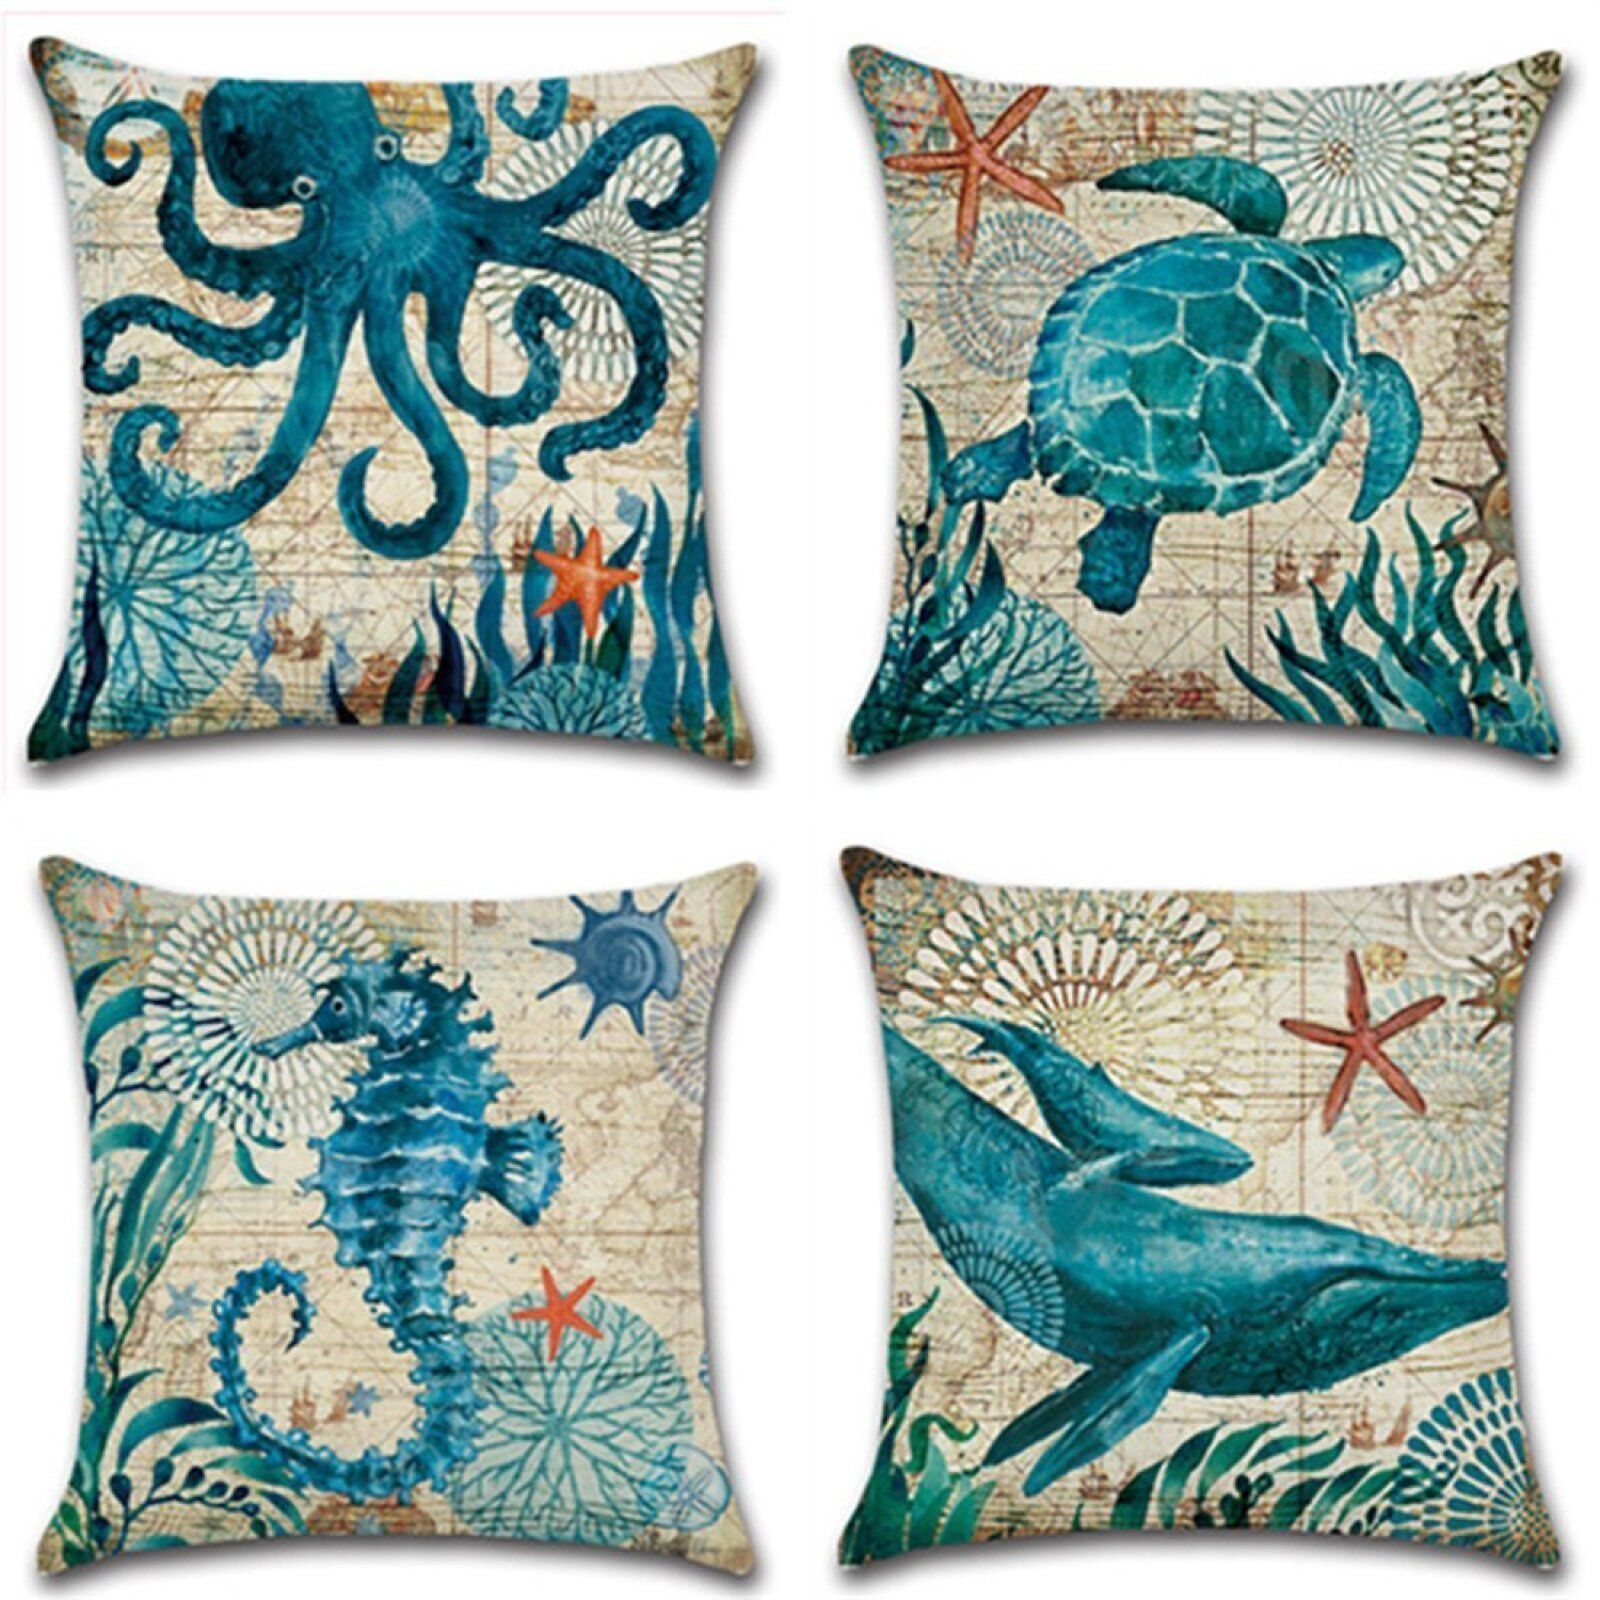 Details About Beach Theme Cushion Covers Sea Square Decorative Throw Pillow Cover 4 Pcs